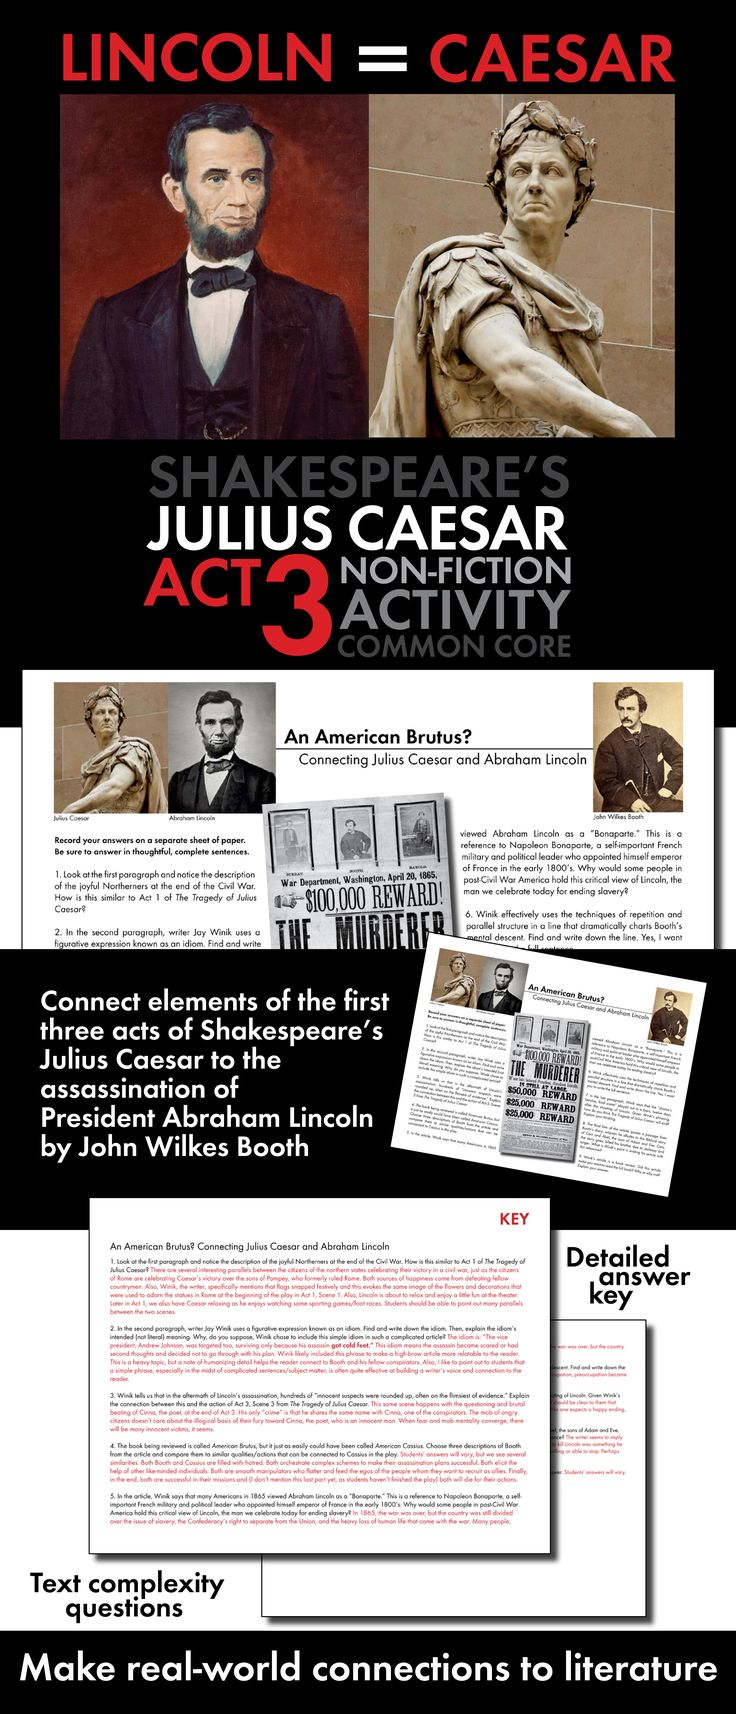 essays on julius caesar Essays on shakespeare's julius caesar: the play julius caesar and its relevance to recent events julius caesar is a play written by william shakespeare in 1599.